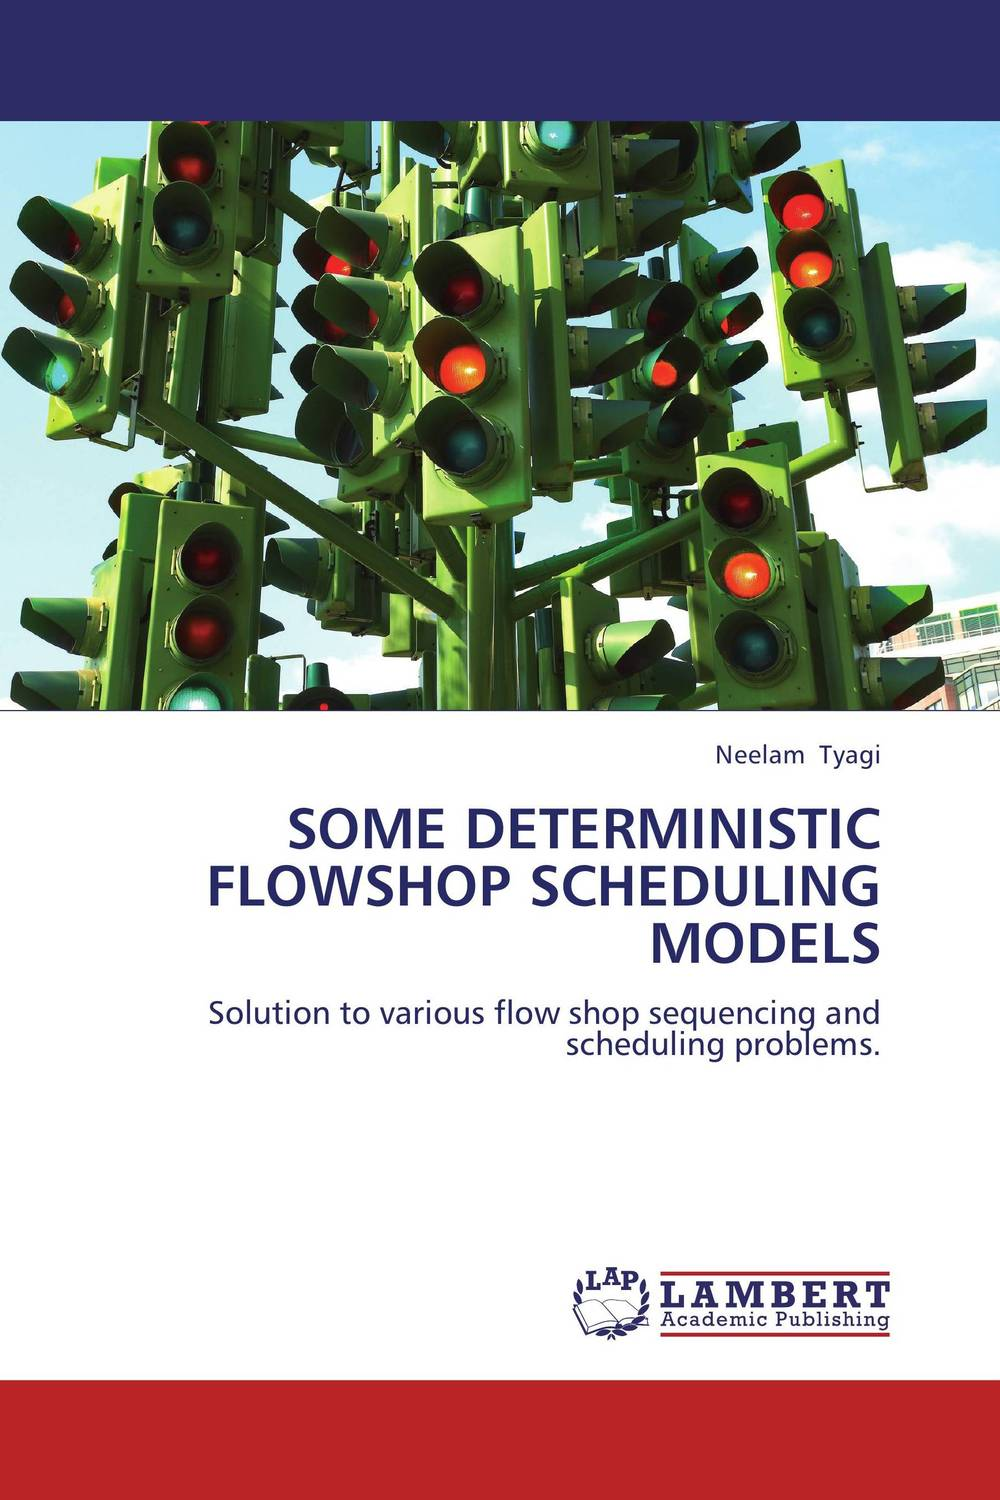 SOME DETERMINISTIC FLOWSHOP SCHEDULING MODELS optimization of hydro generation scheduling